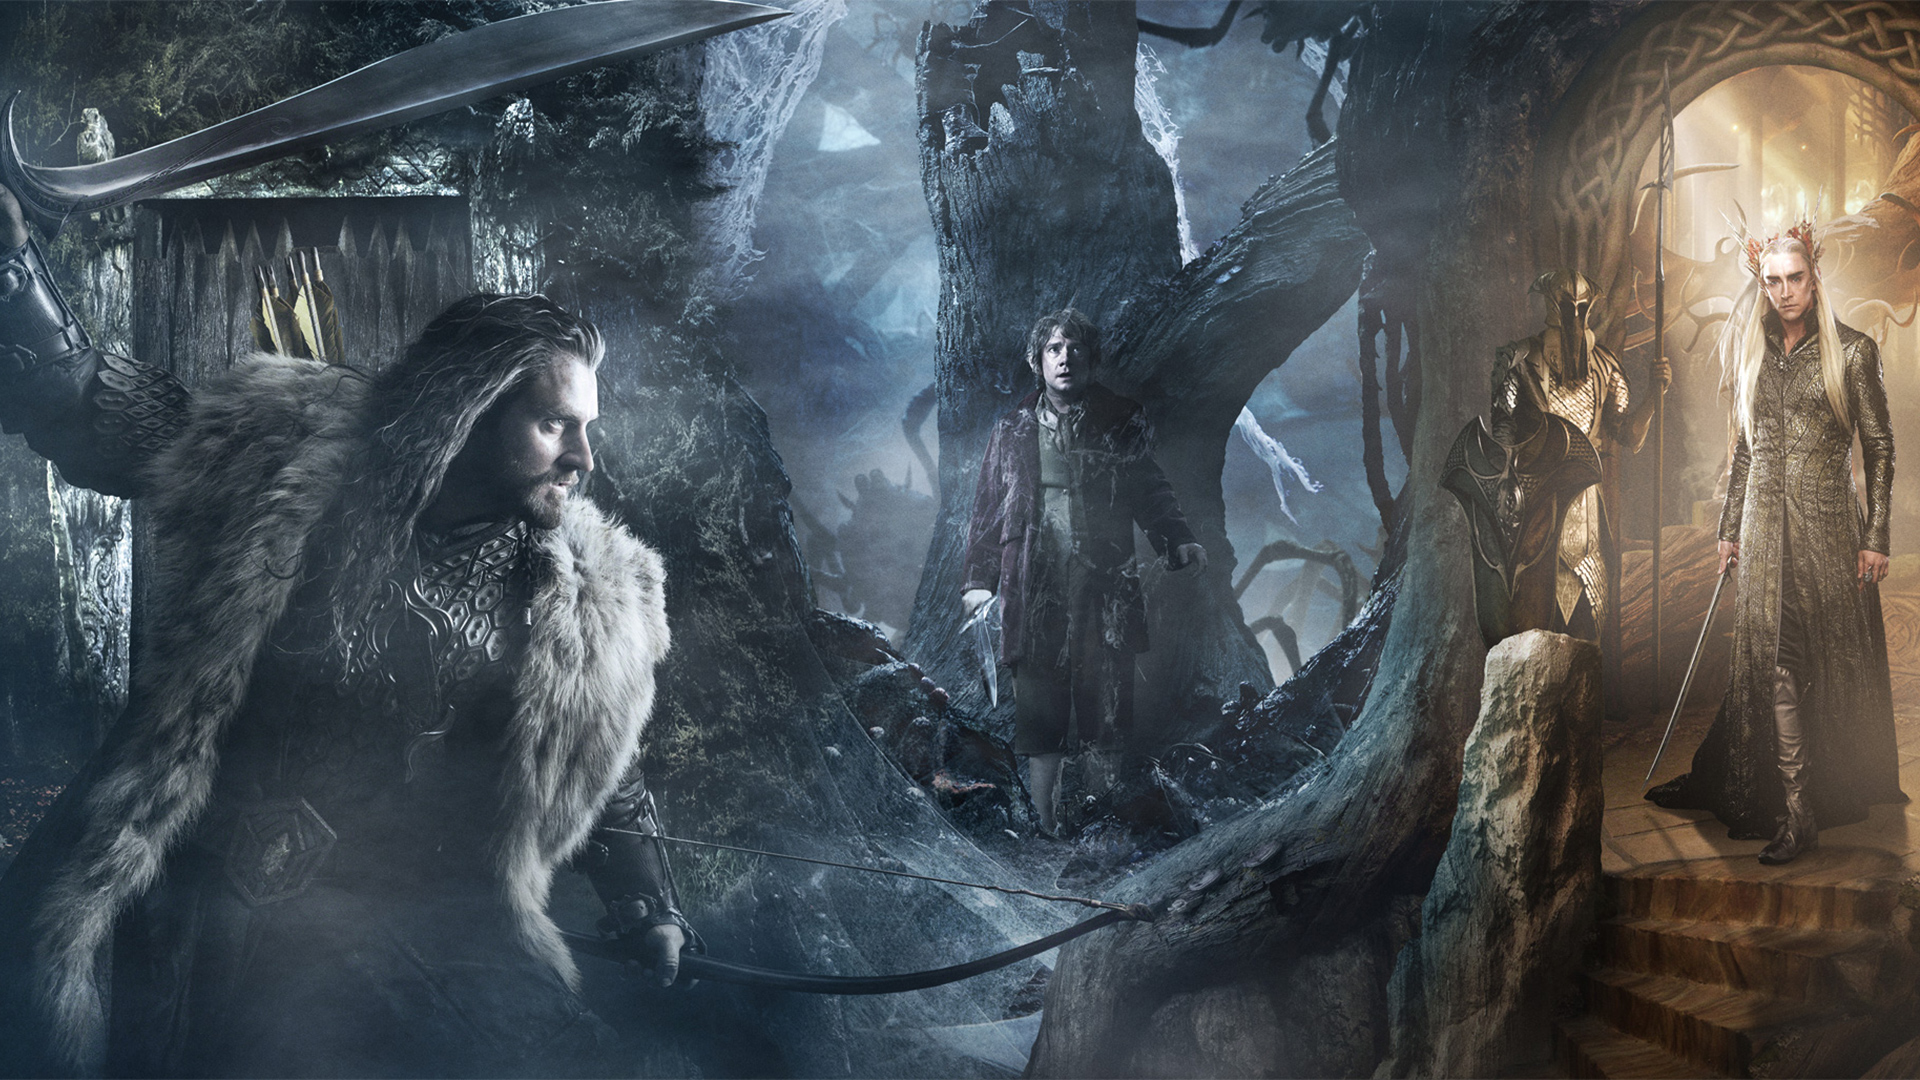 1920x1080 The Hobbit Desolation Of Smaug Trio Desktop PC And Mac Wallpaper